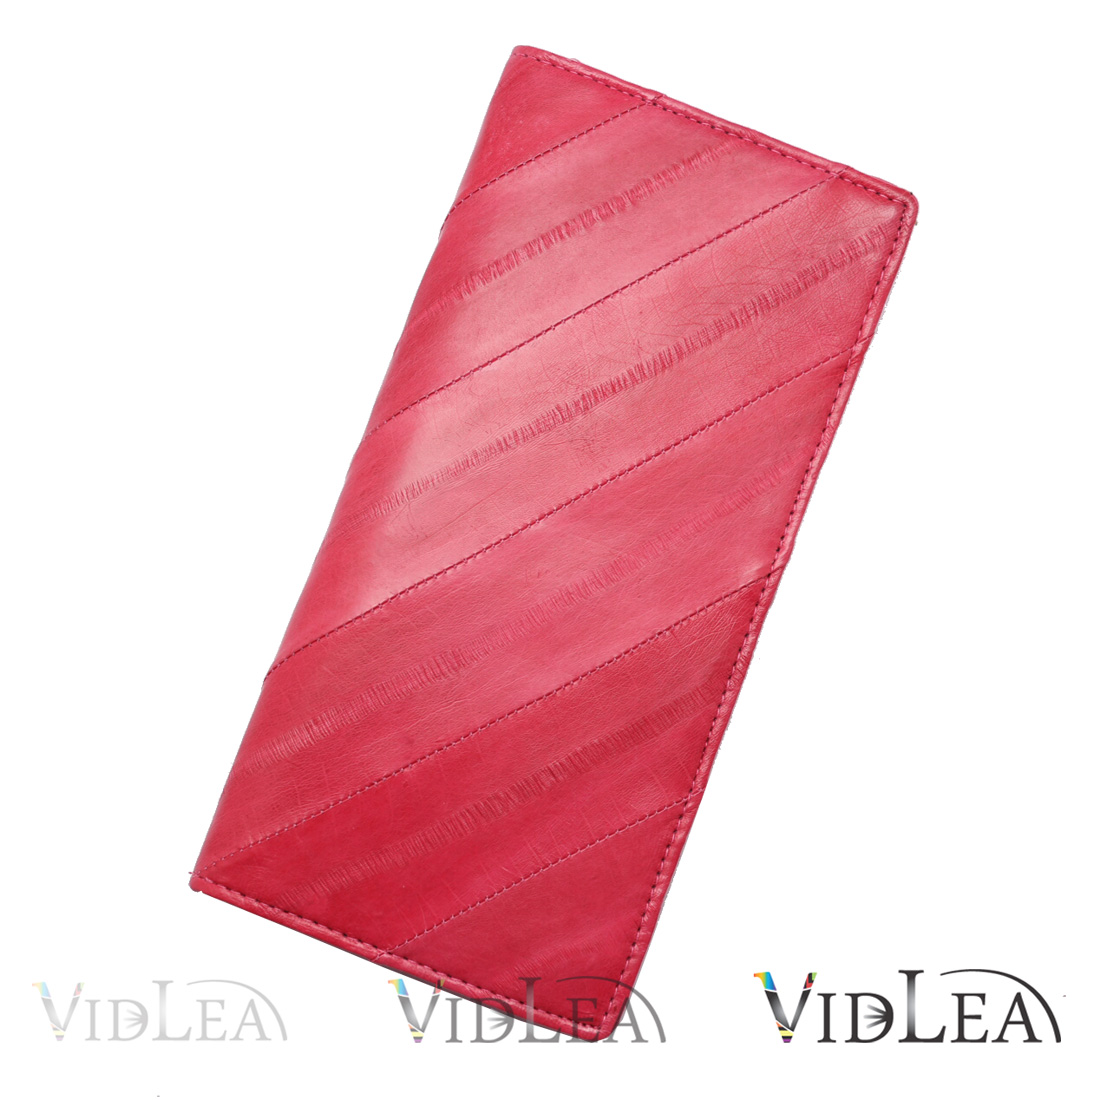 eel skin pink wallet diagonal long slim fold coin purse credit card holder - Pink Card Holder